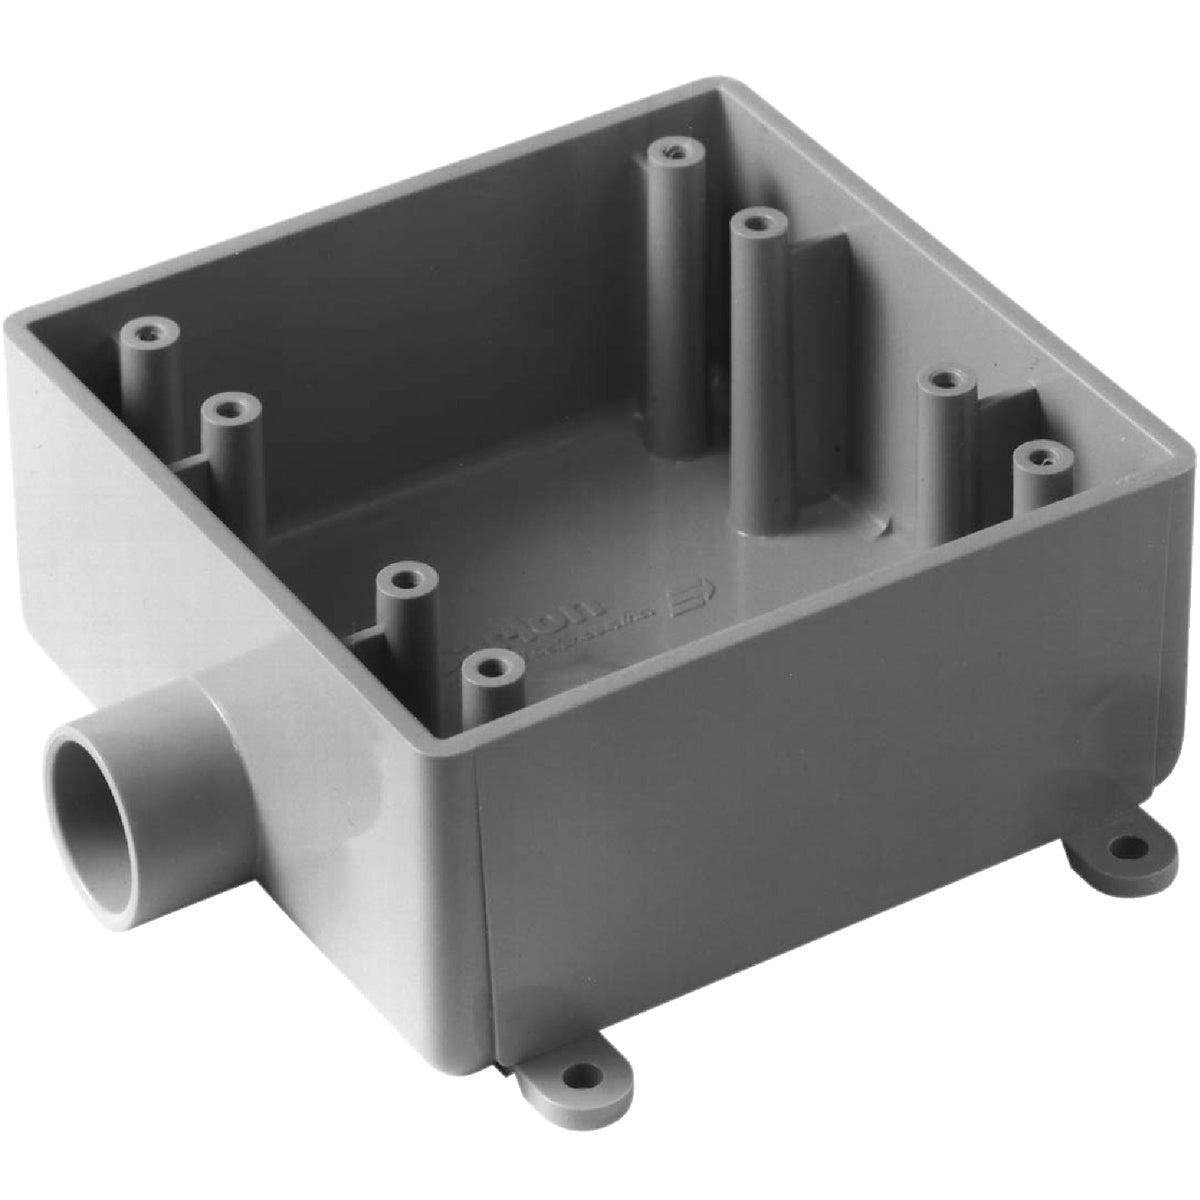 "3/4"" 2FSE OUTLET BOX - E9802ECTN by Thomas & Betts"